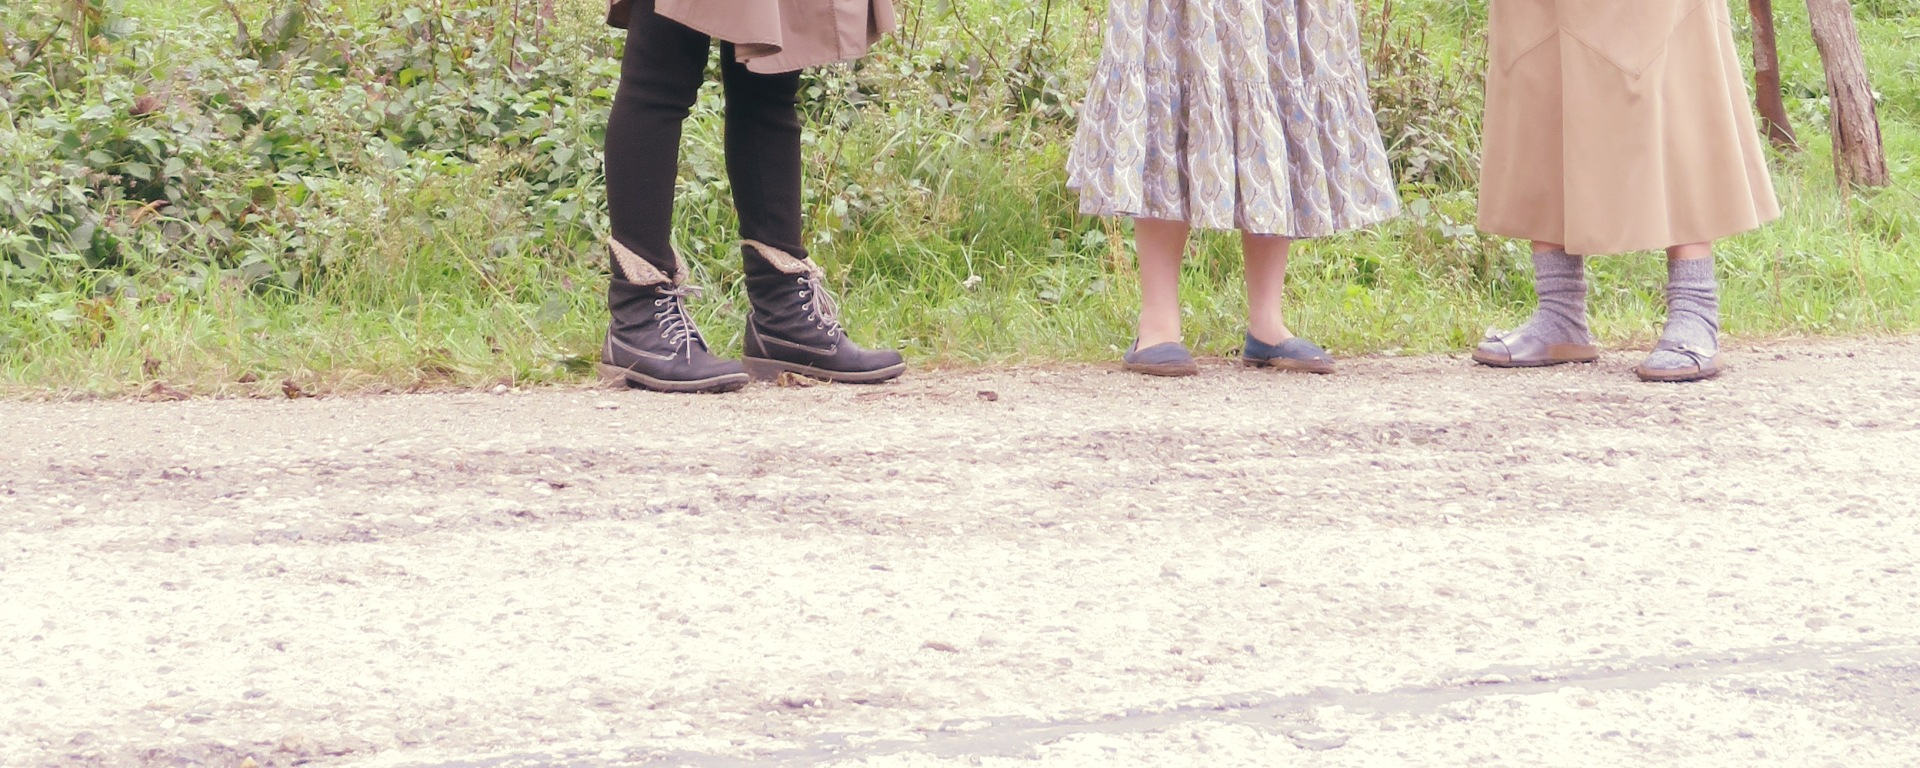 Just Feet - Volunteers at a Romanian Monastery - Anika Mikkelson - Miss Maps